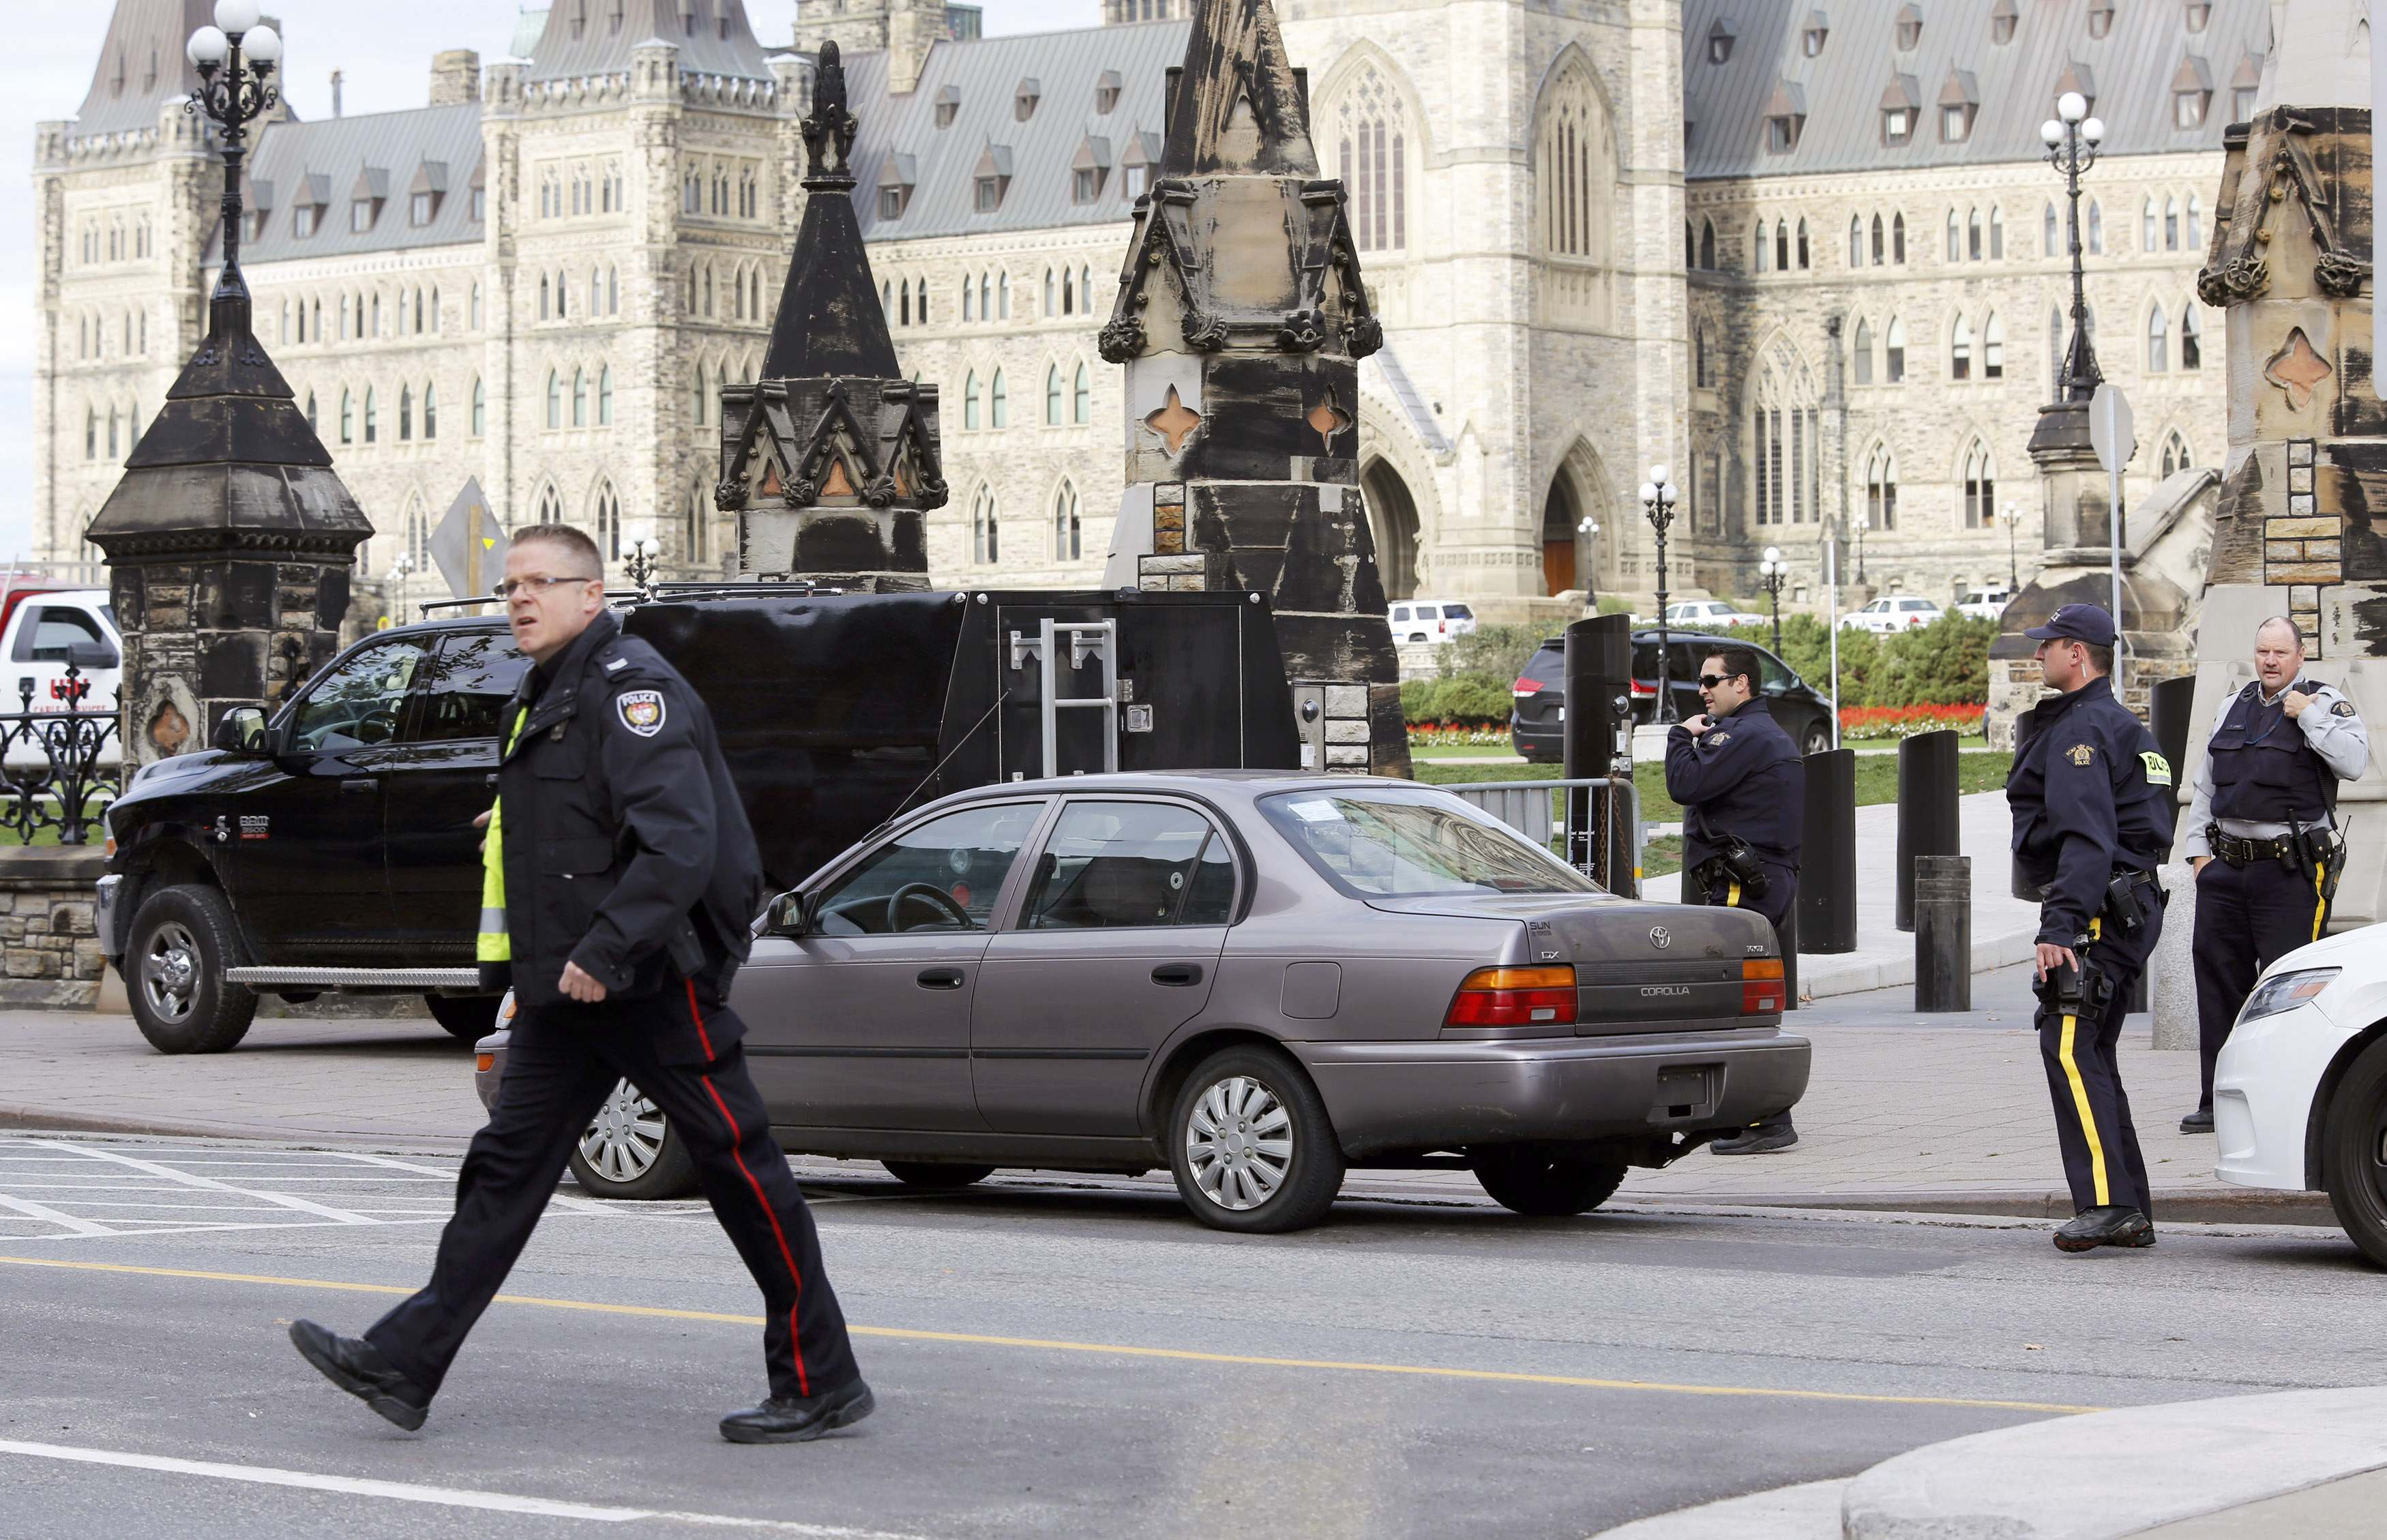 Canada parliament shooter made video, driven by ideology – police